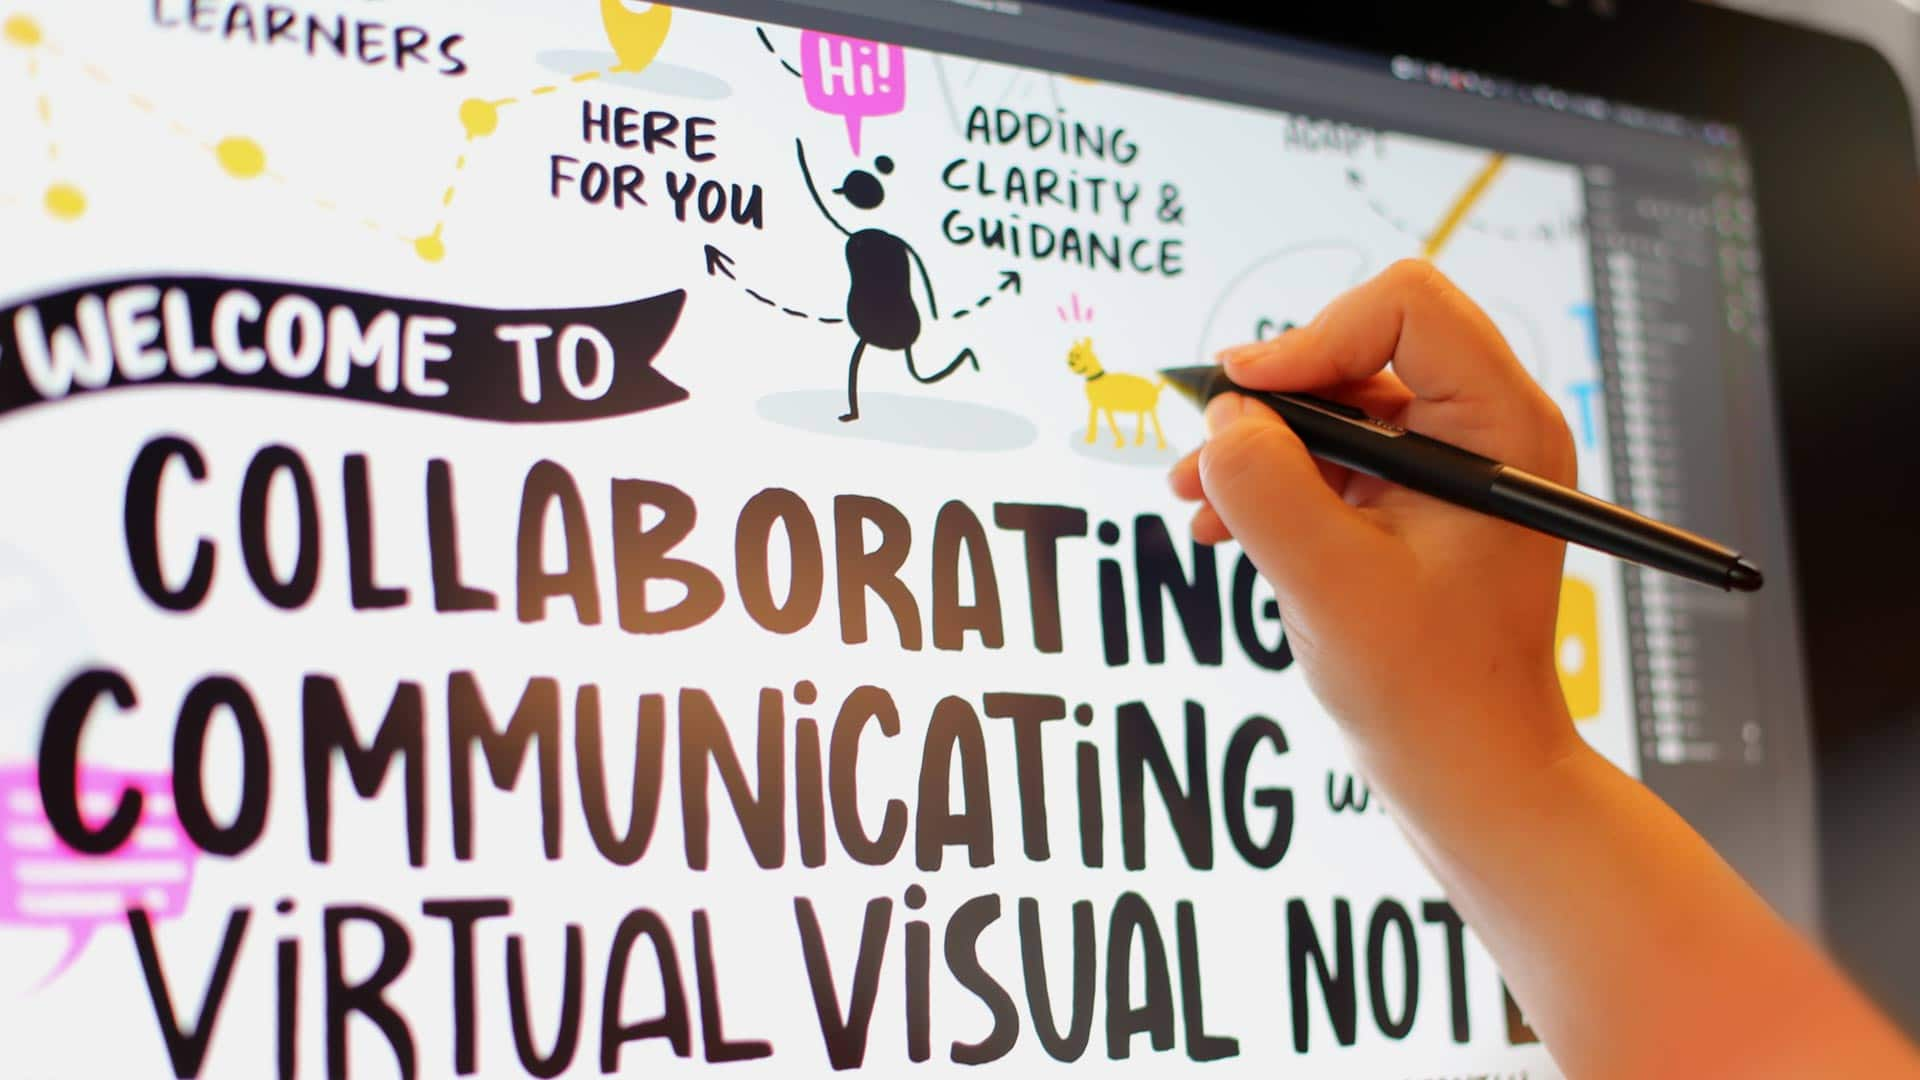 An artist draws live digital visual notes for a remote meeting